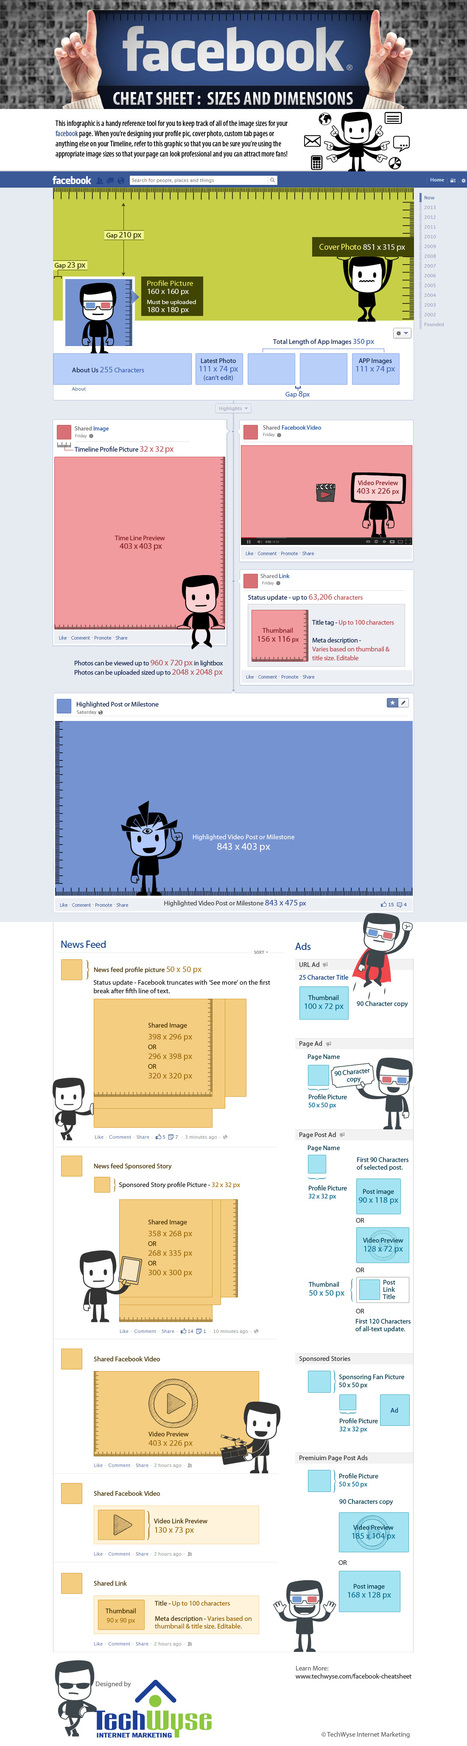 Facebook Cheat Sheet: Image Size and Dimensions | Image Digitale | Scoop.it